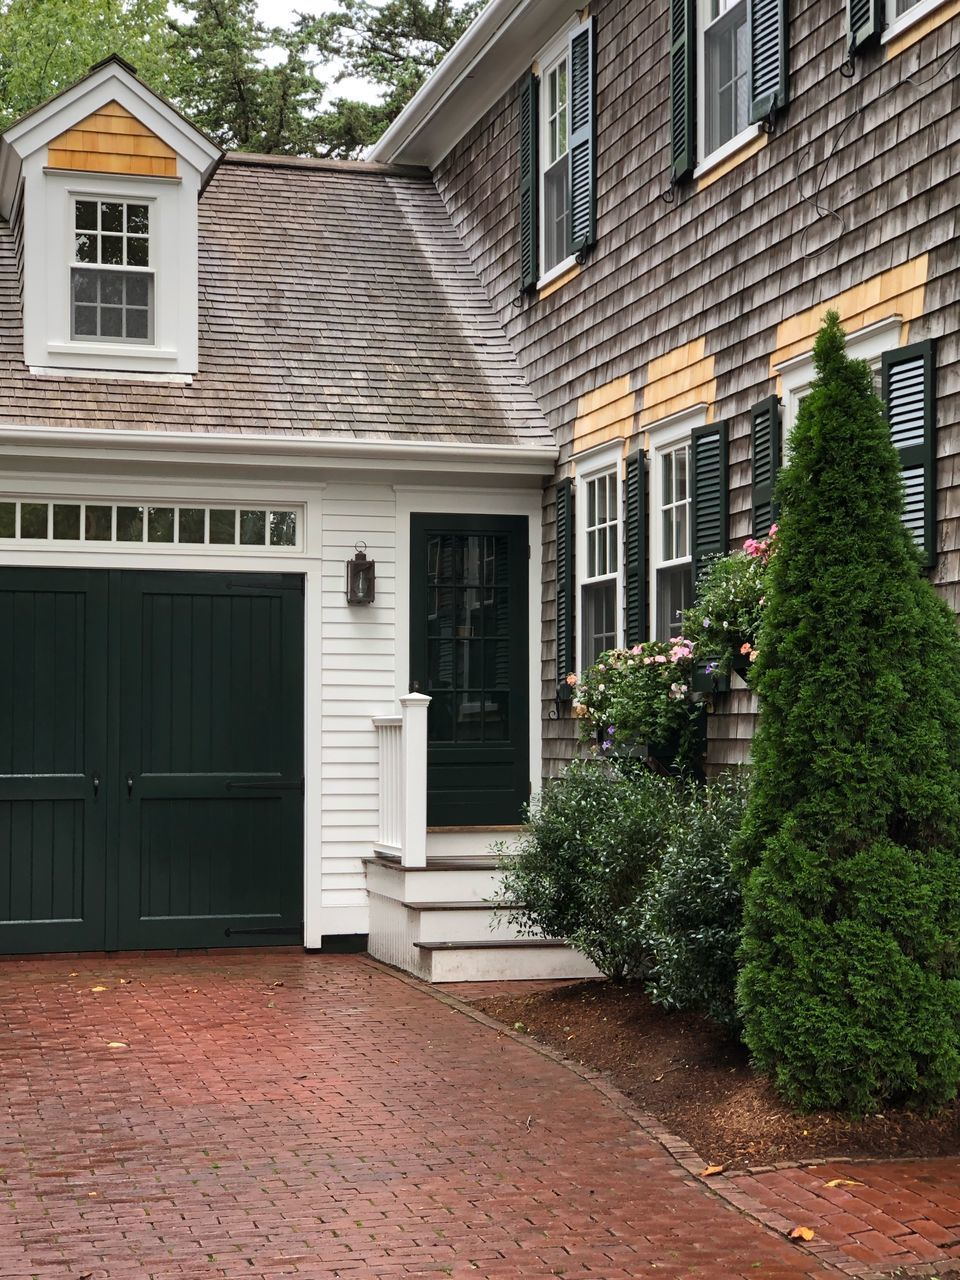 architecture, built structure, building exterior, building, window, plant, tree, house, residential district, no people, day, nature, door, entrance, outdoors, christmas, celebration, green color, front or back yard, holiday, garage